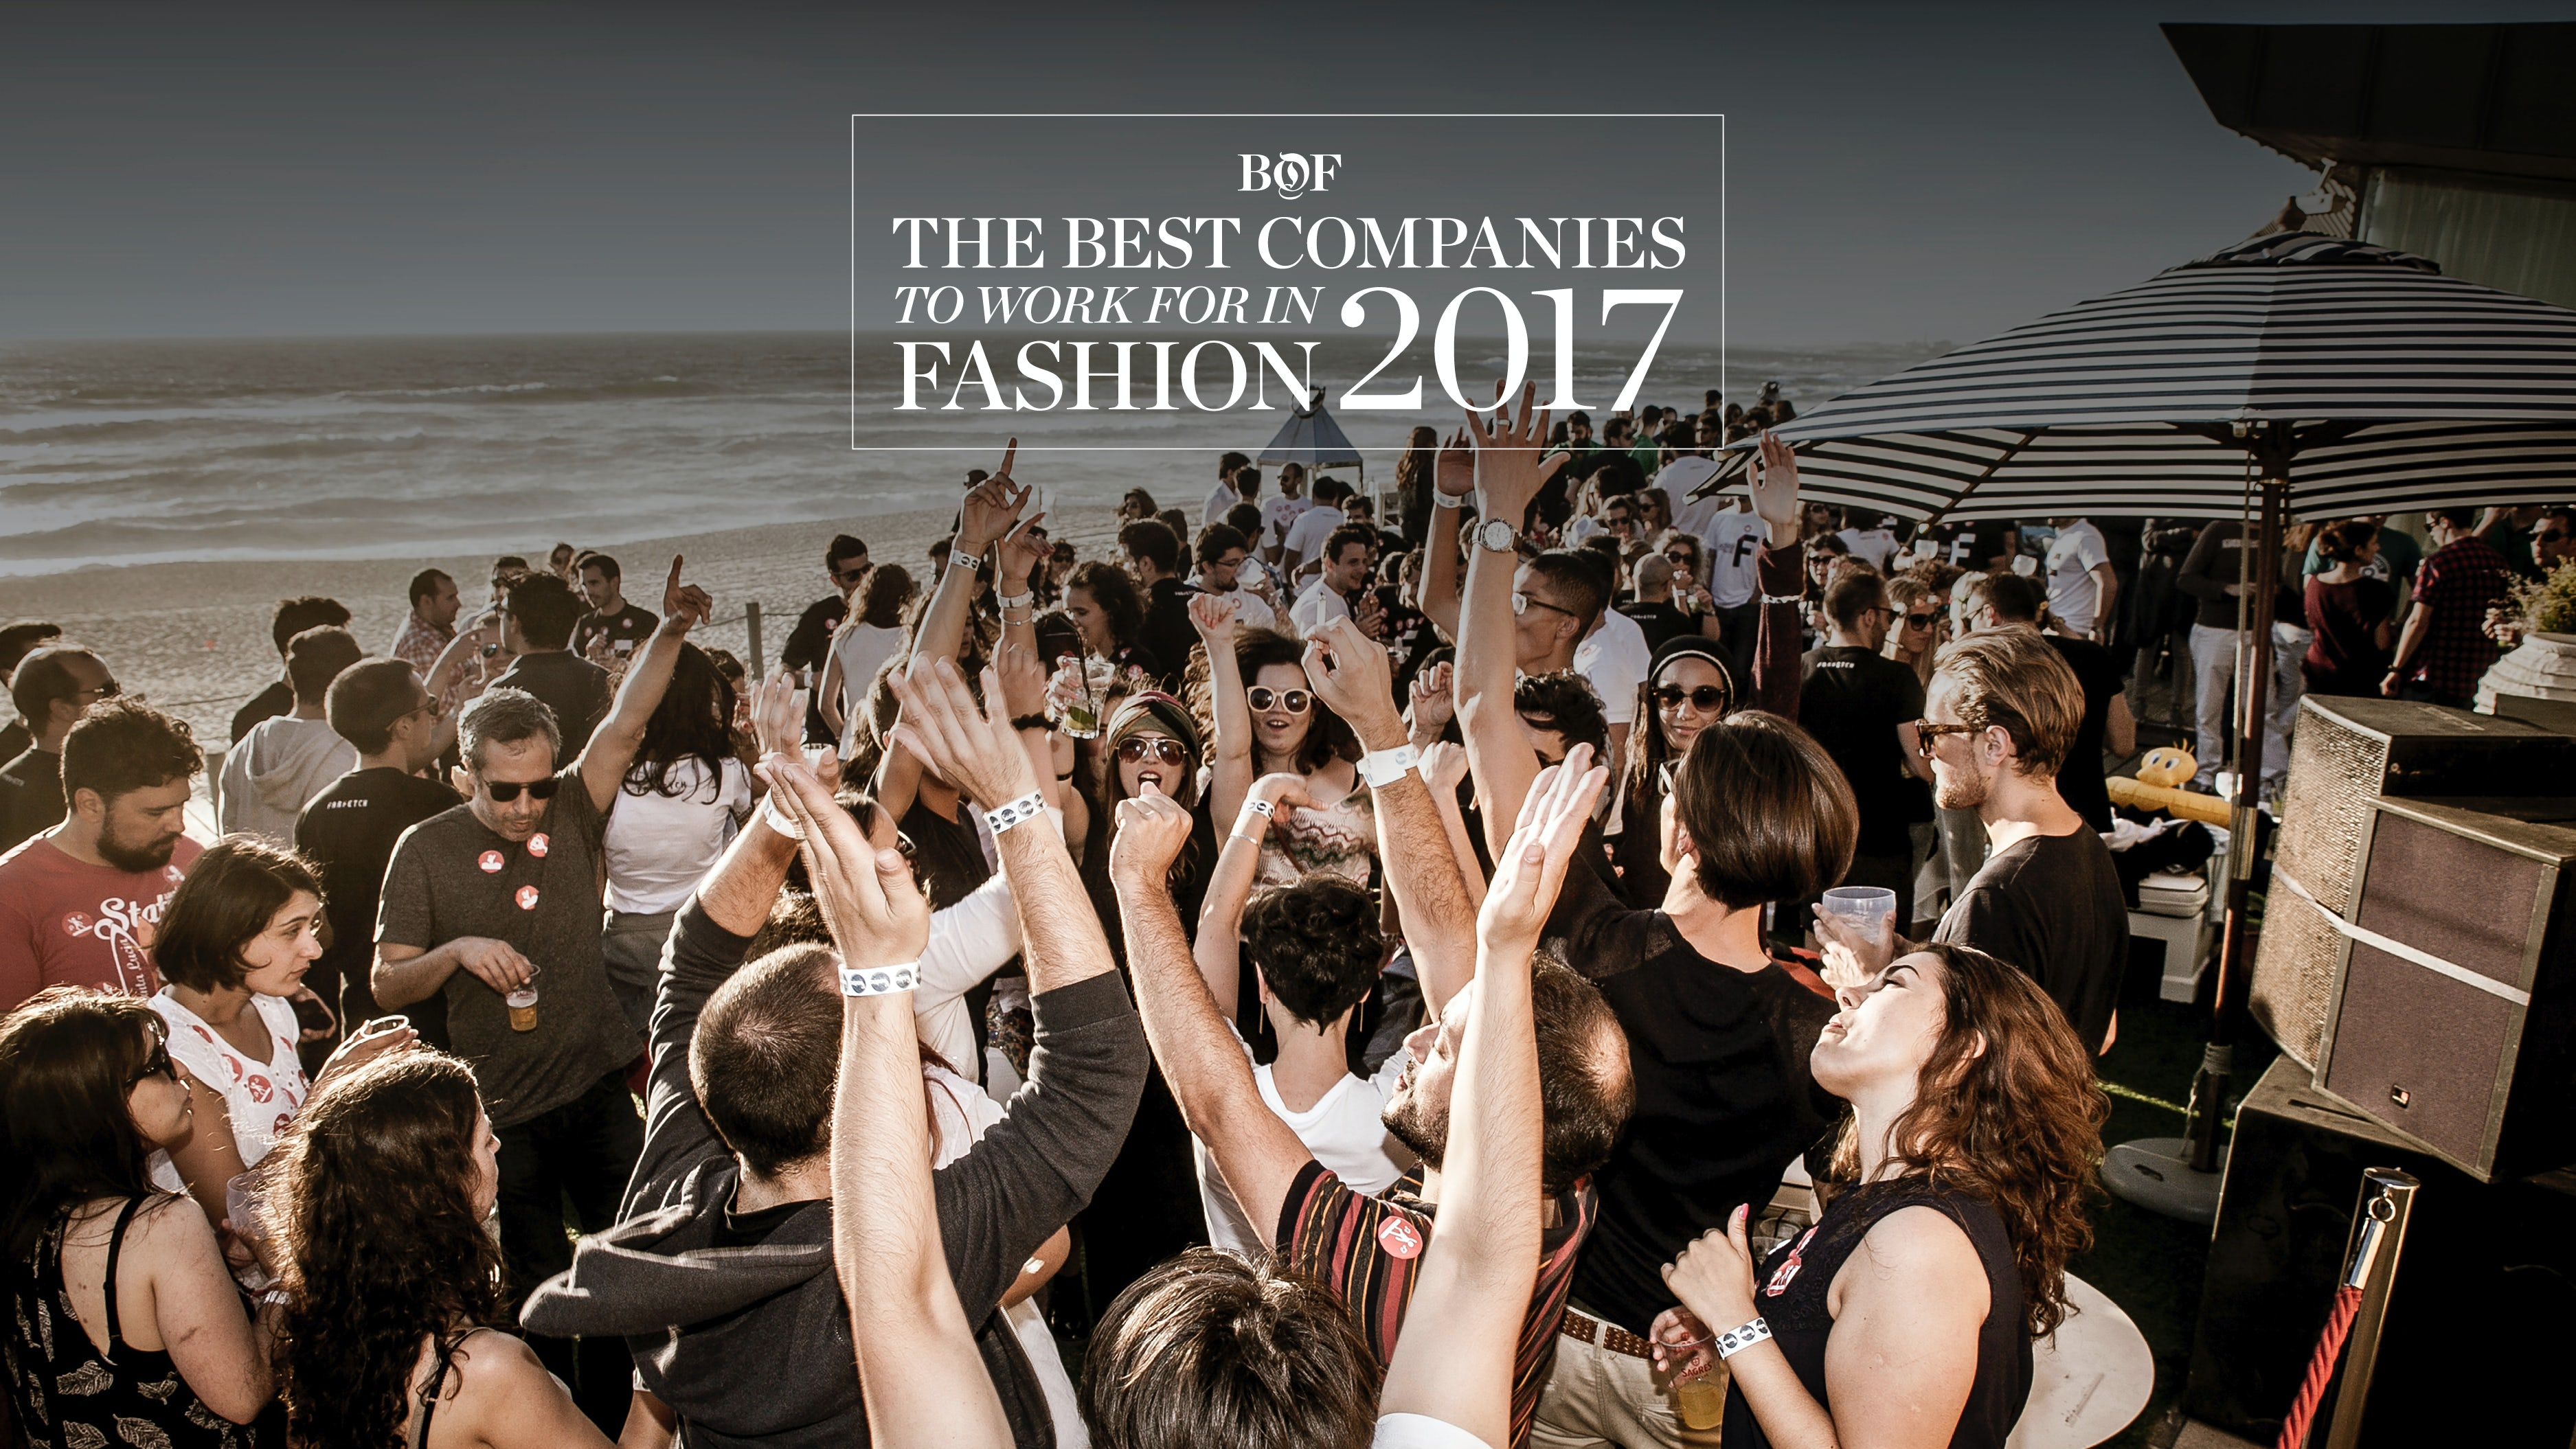 Article cover of The Best Companies To Work For In Fashion